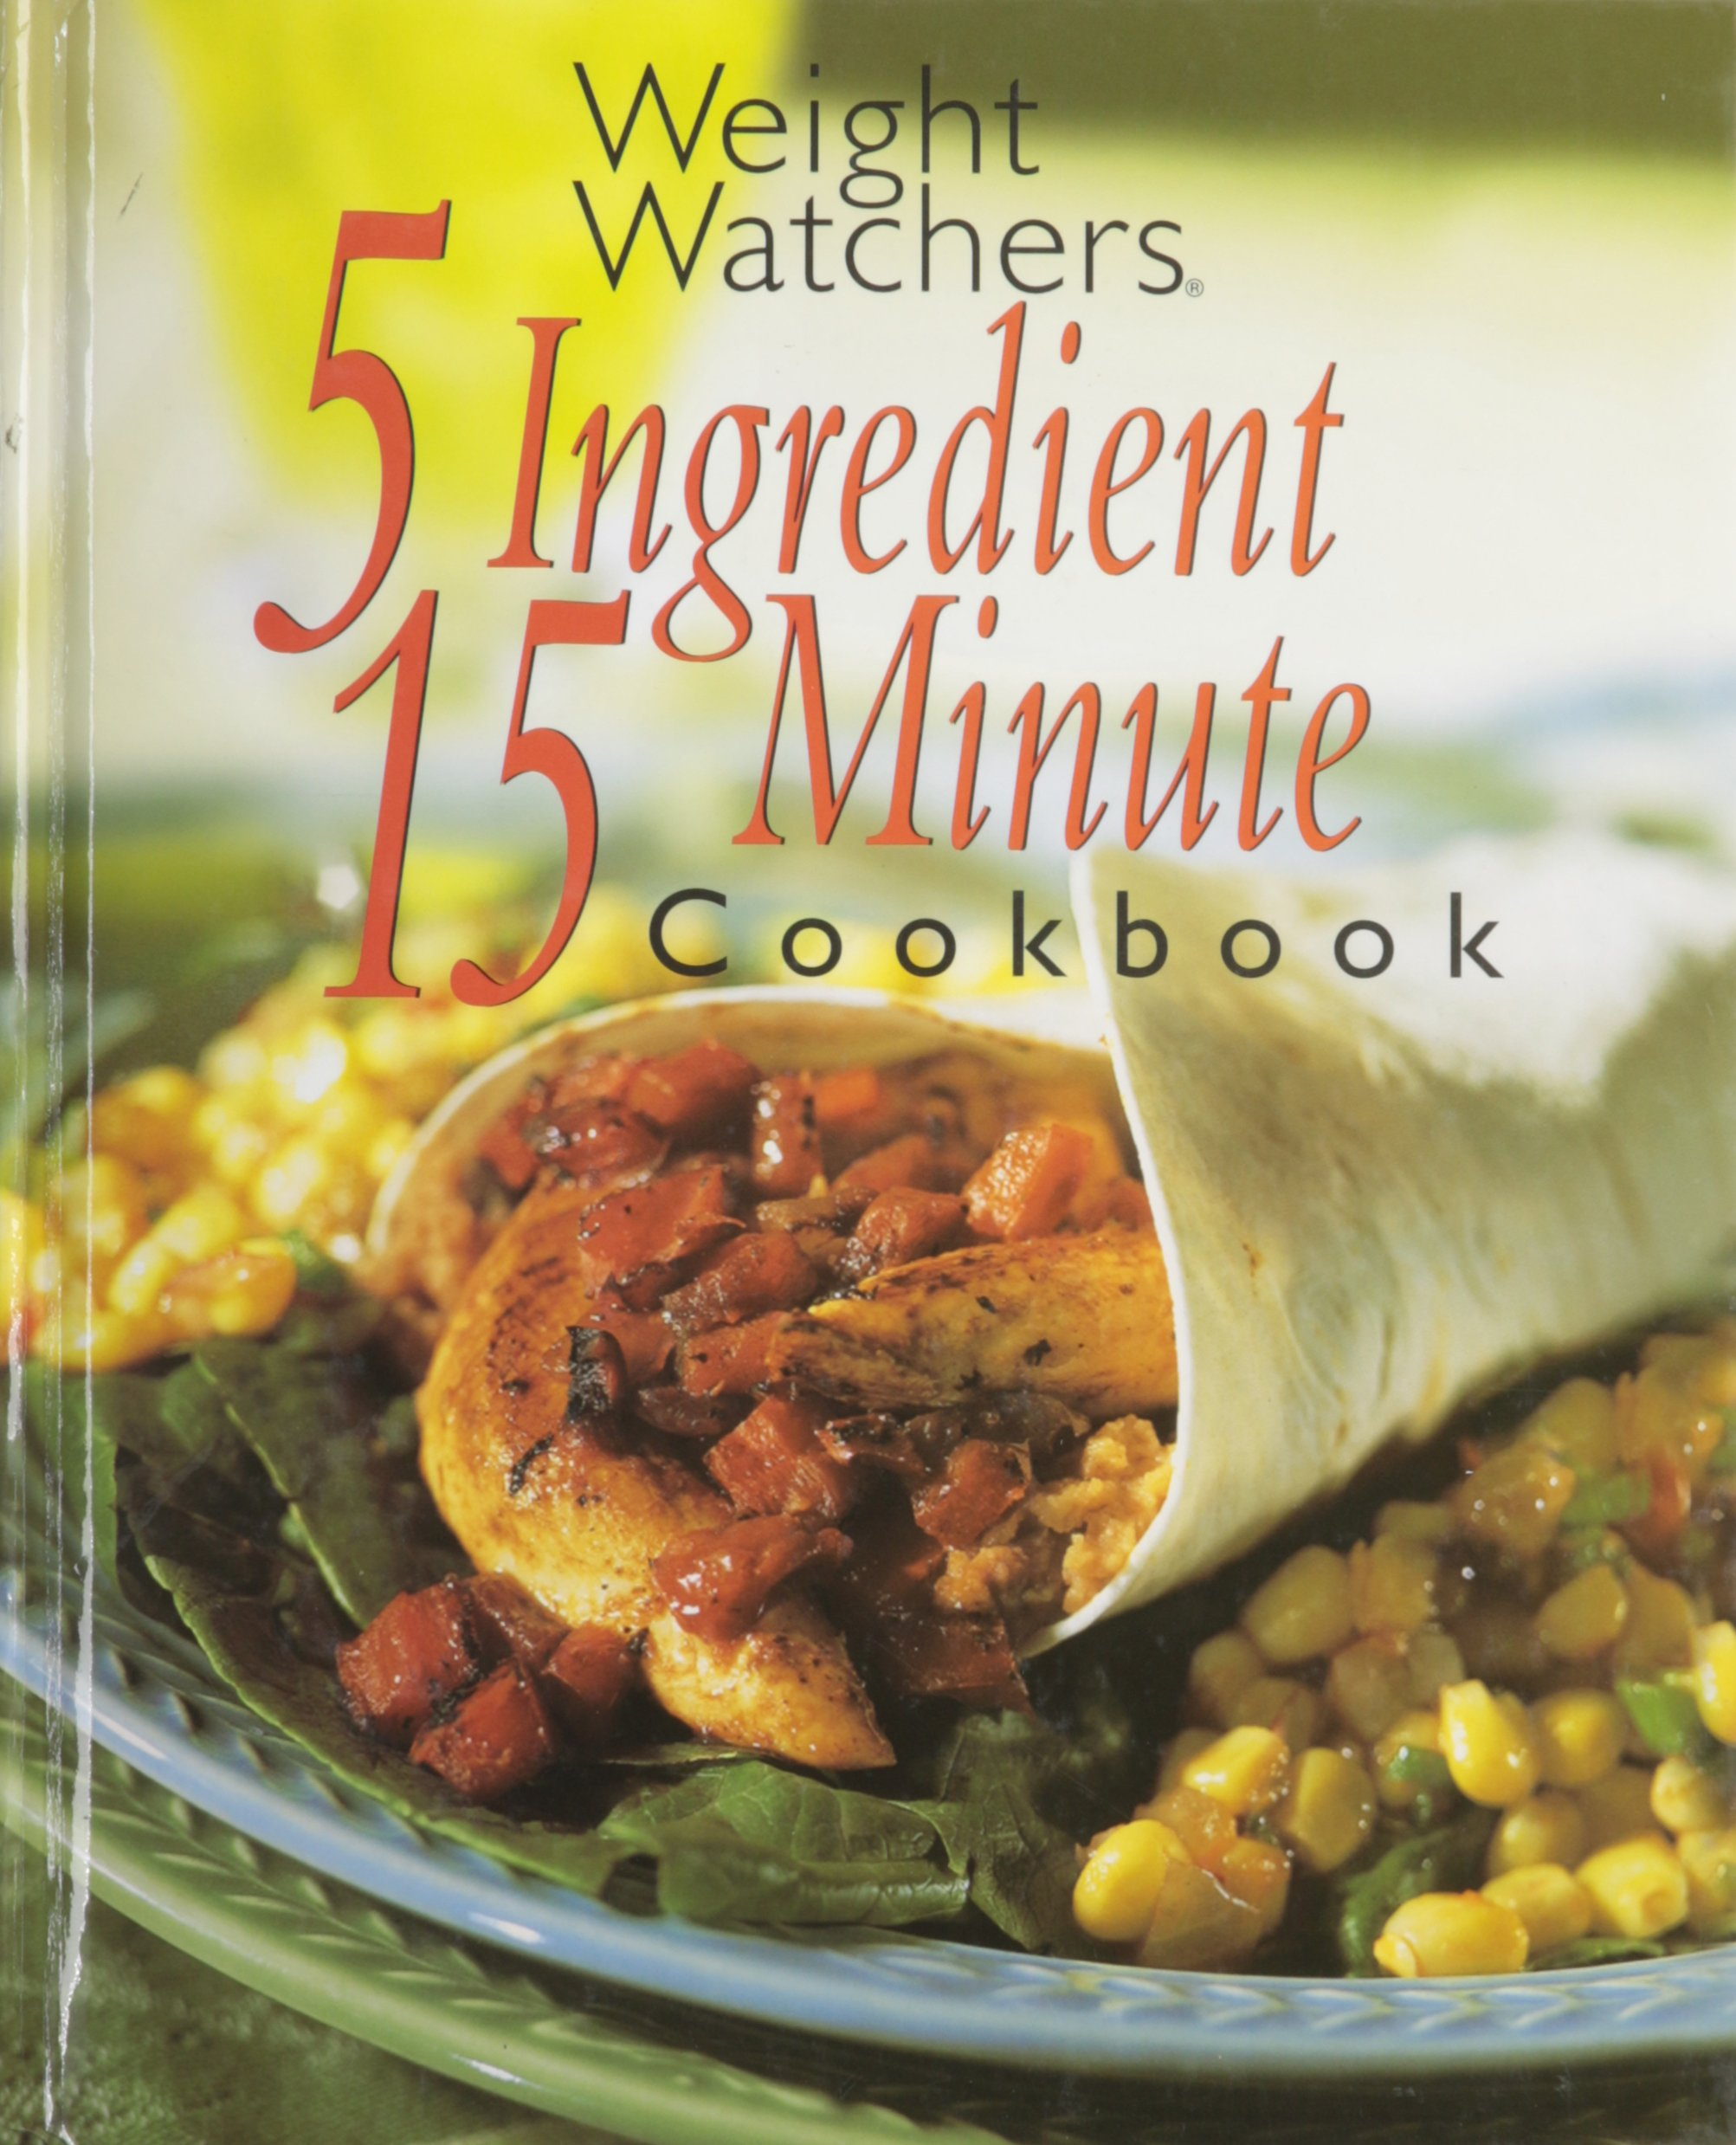 Weight Watchers cook book